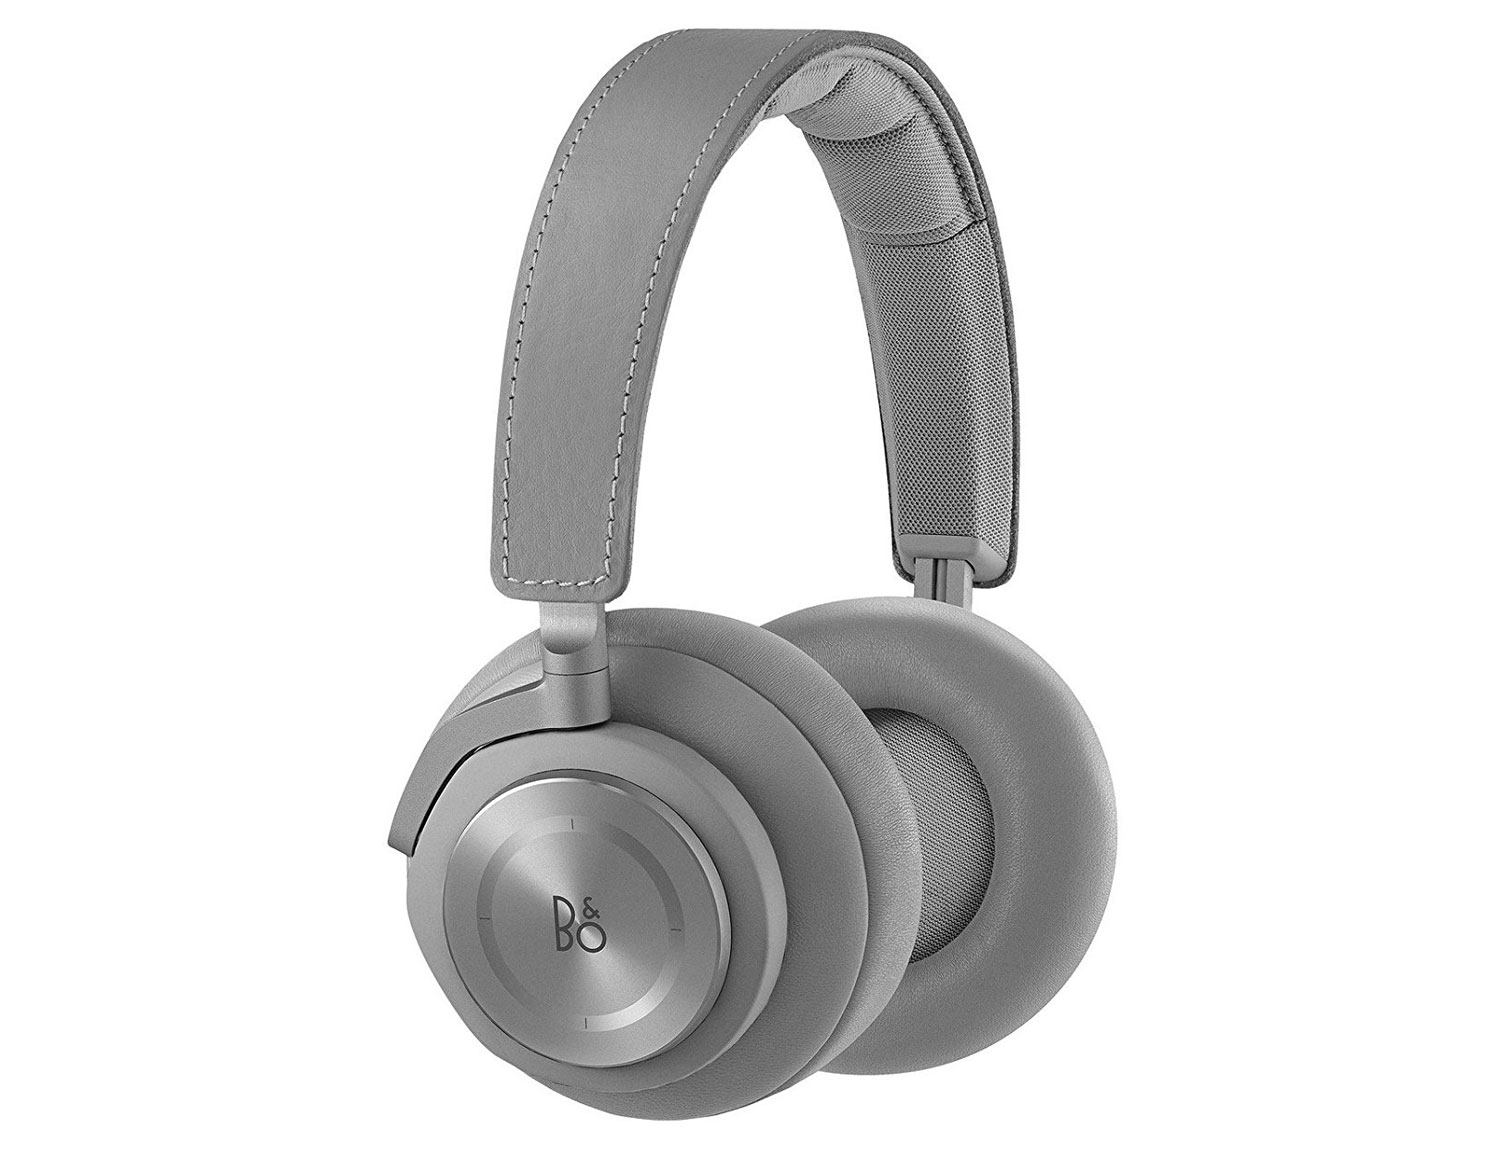 Wireless headphones: Beoplay